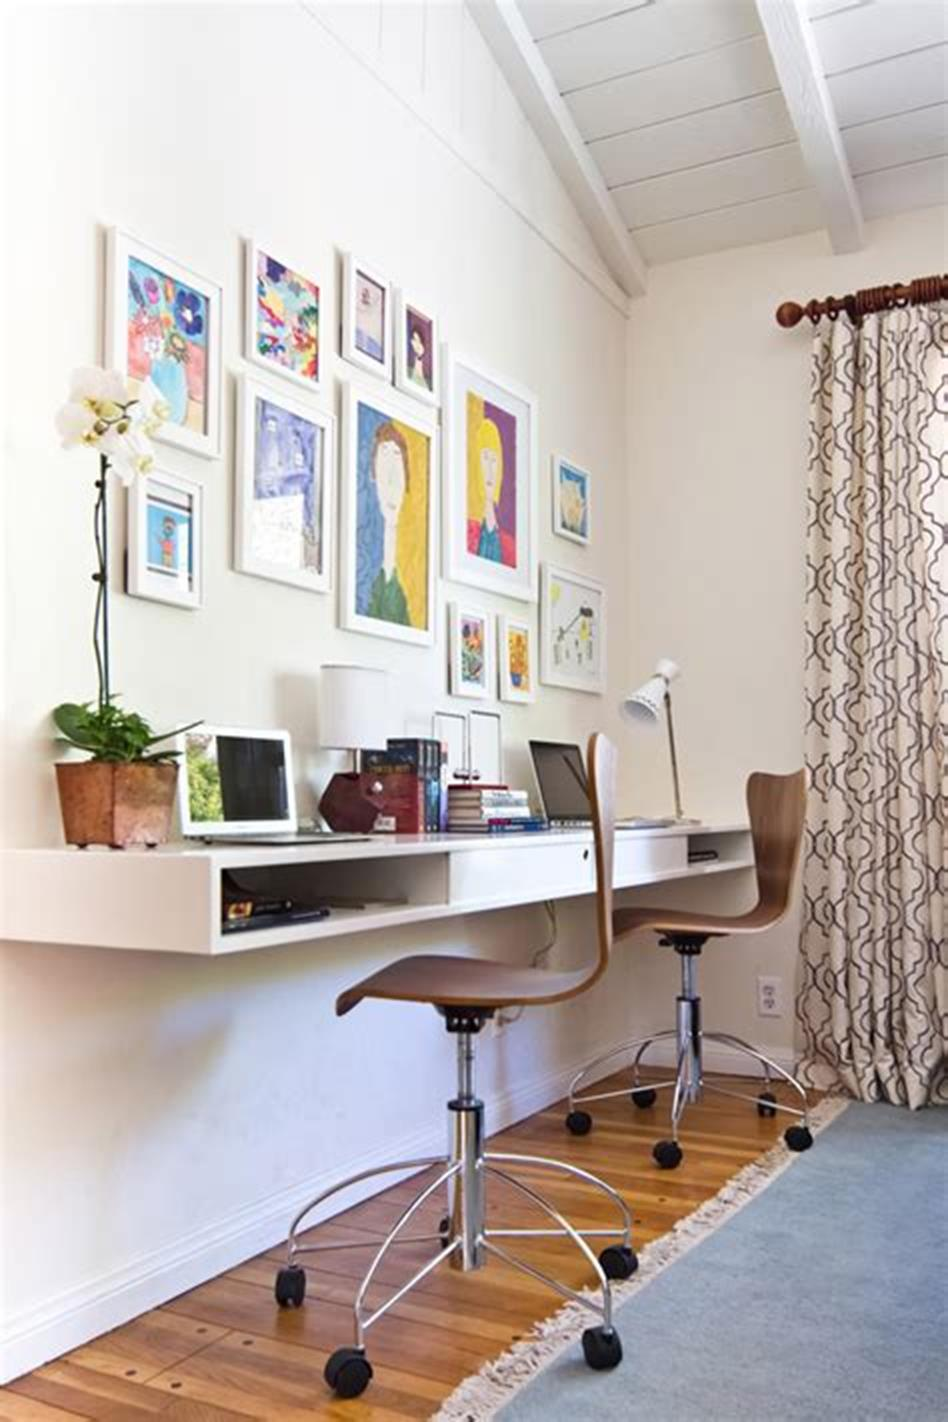 50 Best Small Space Office Decorating Ideas On a Budget 2019 6